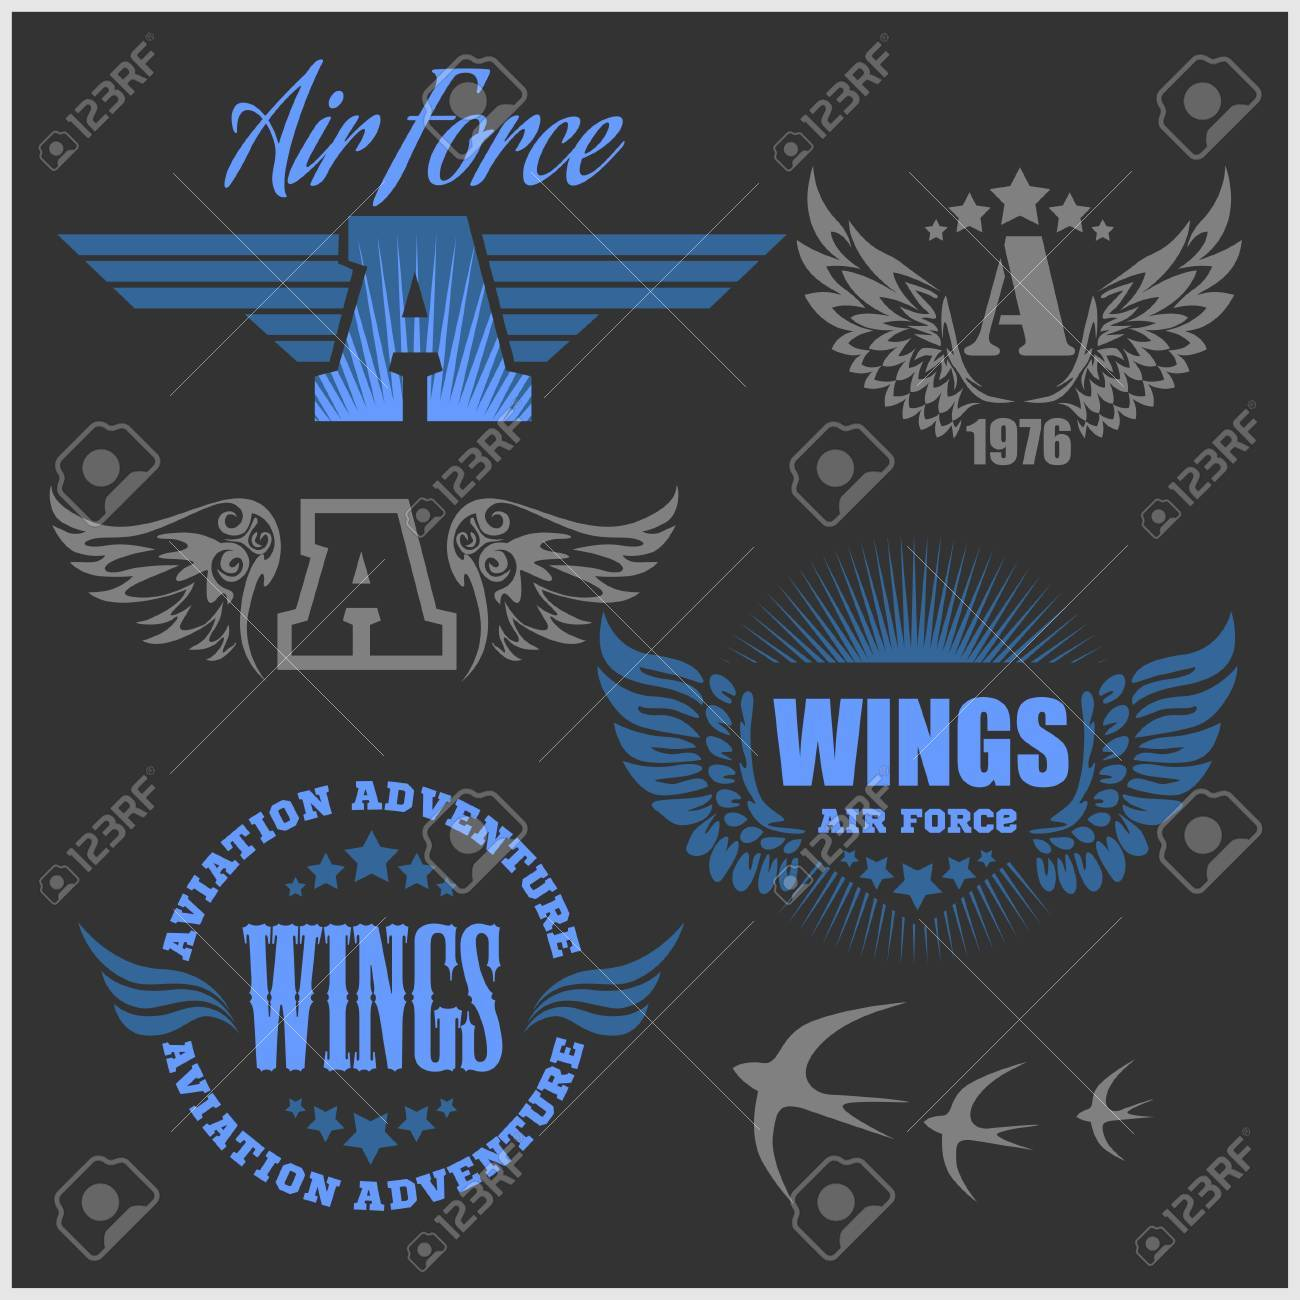 Air Force Shields And Labels With Wings Isolated On Dark Royalty ...